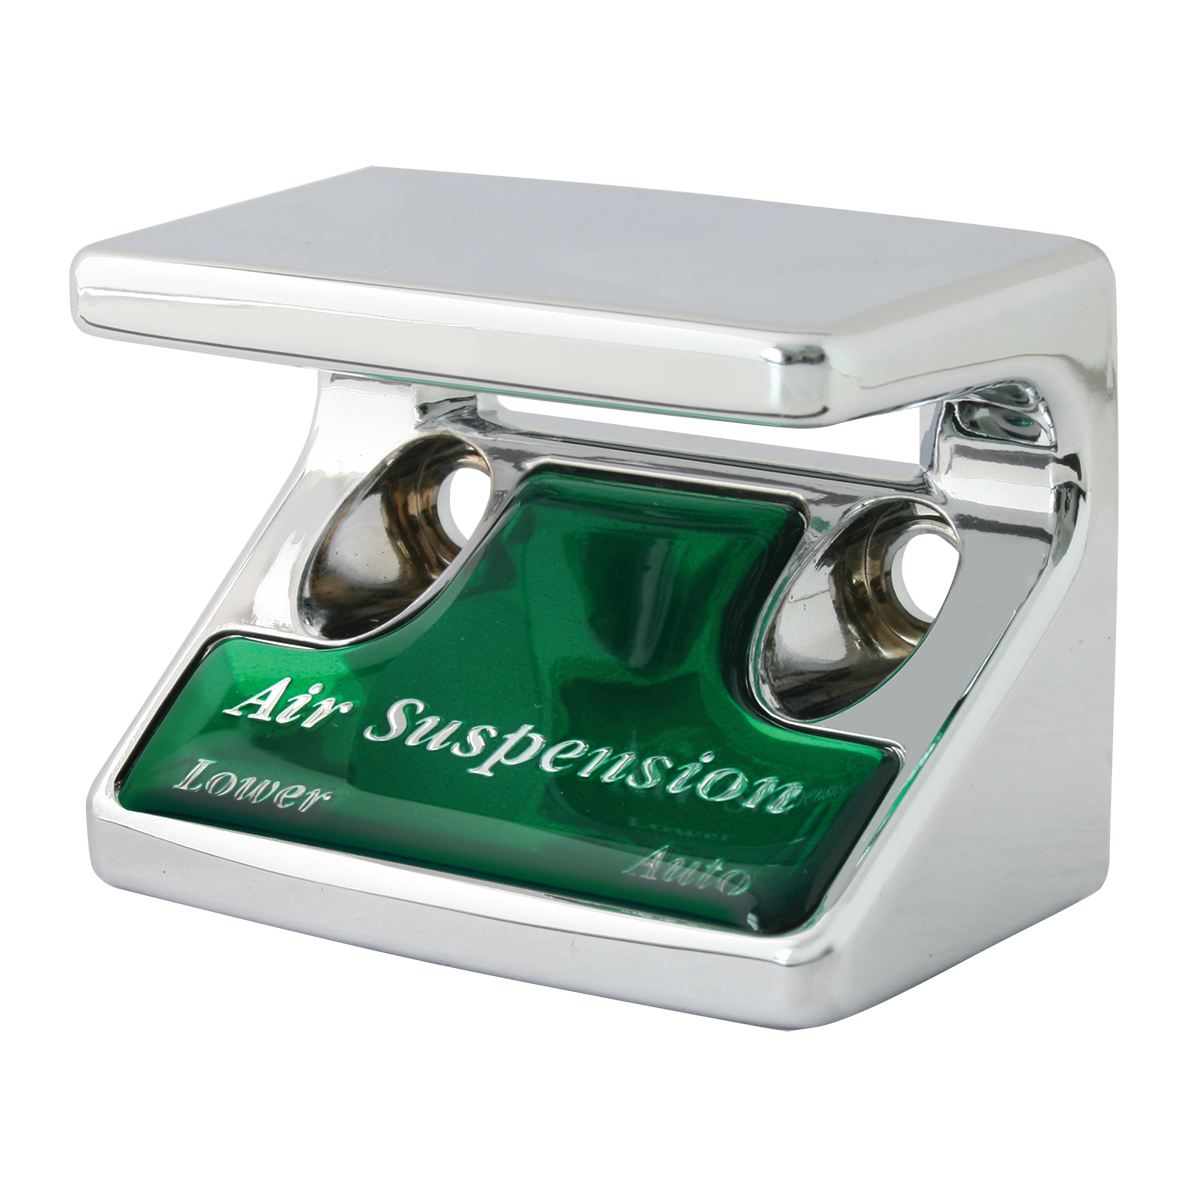 96183 Air Suspension Switch Guard in Green Glossy Sticker